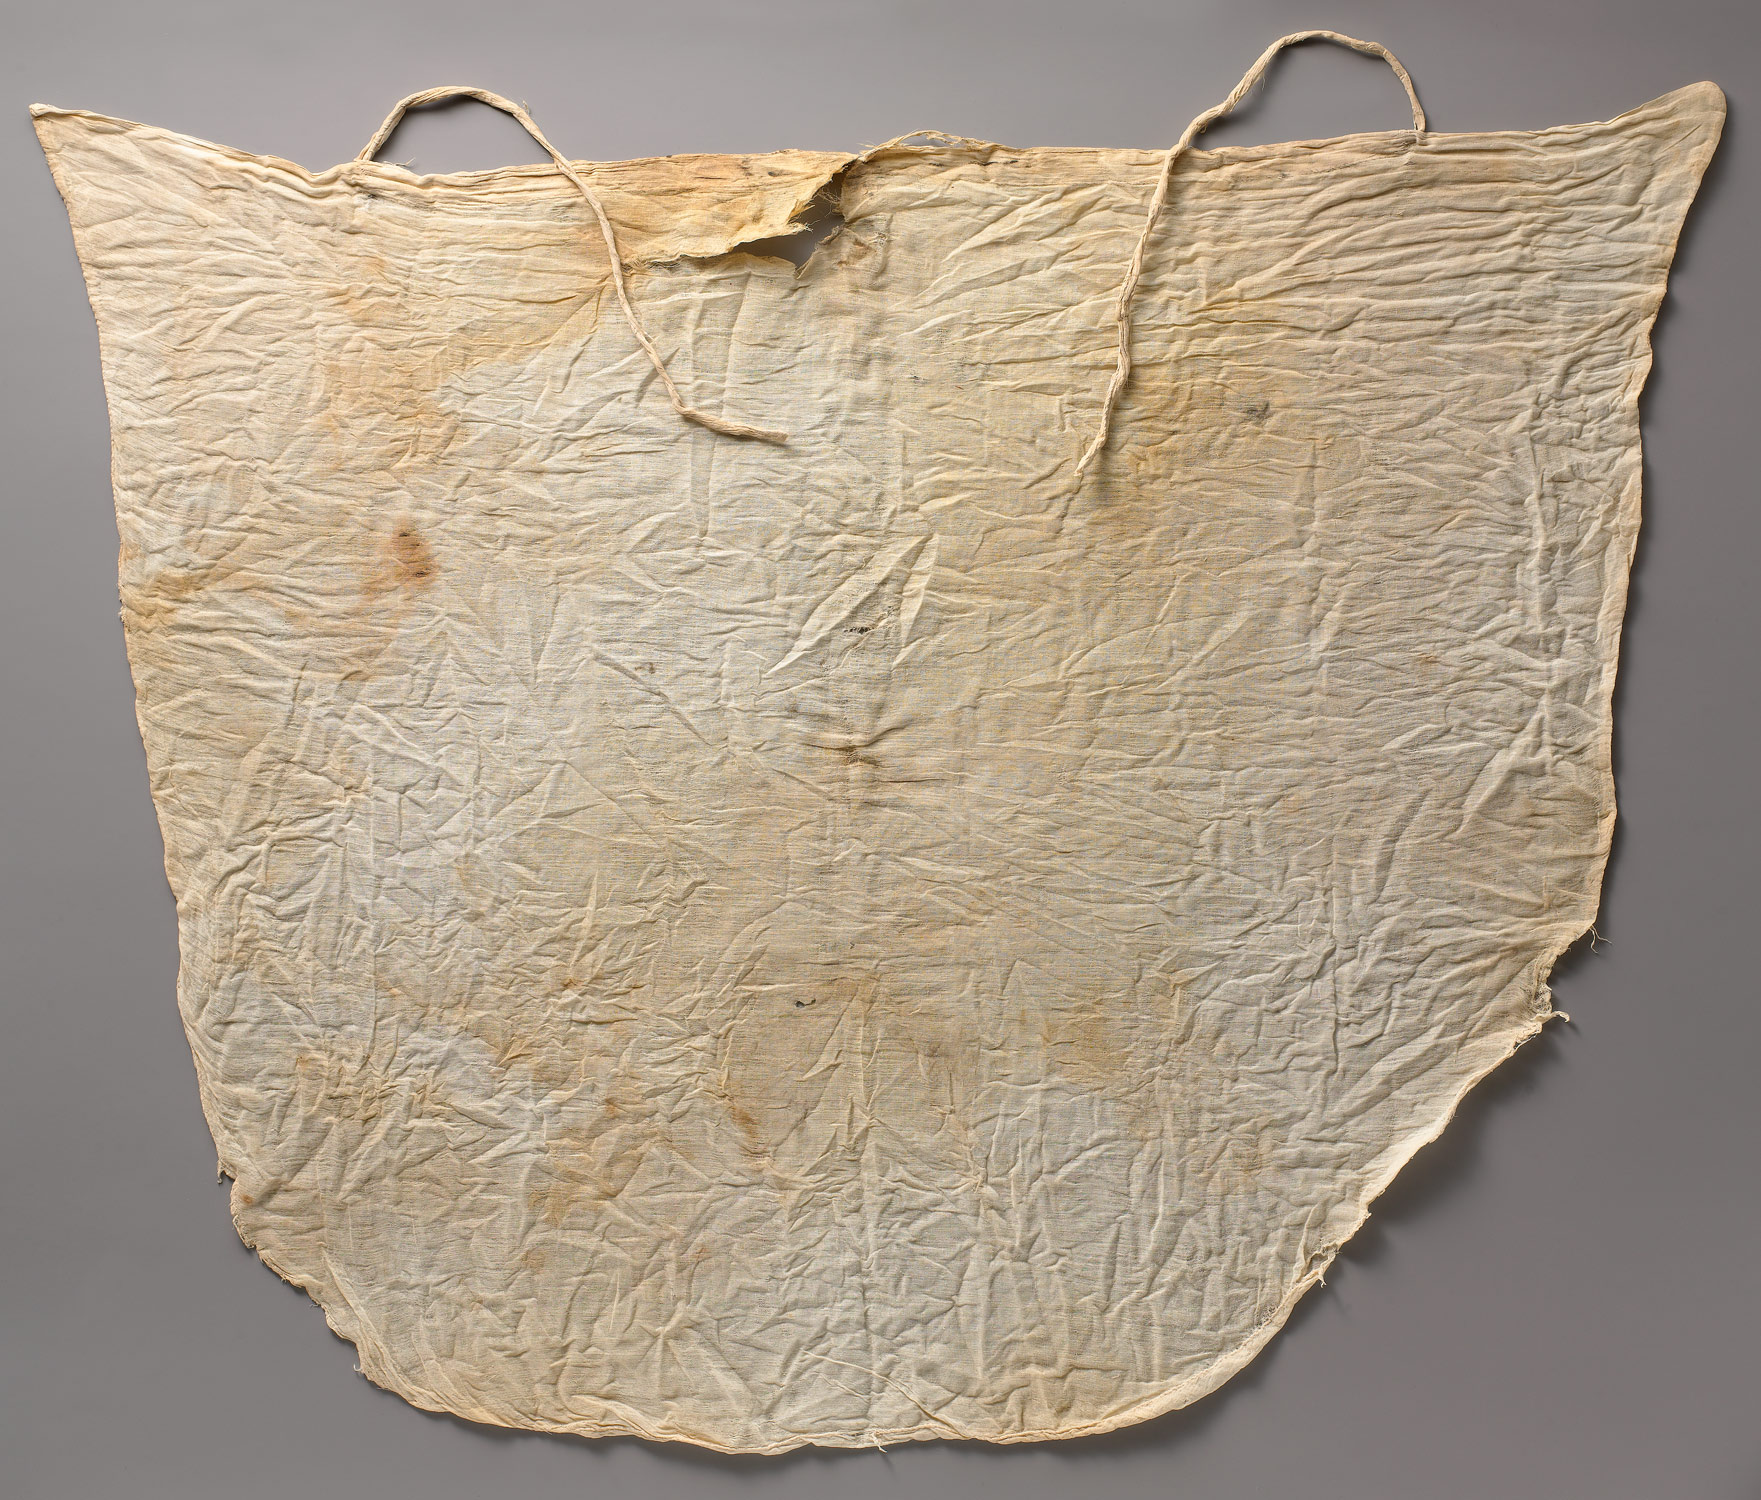 Kerchief from Tutankhamuns Embalming Cache